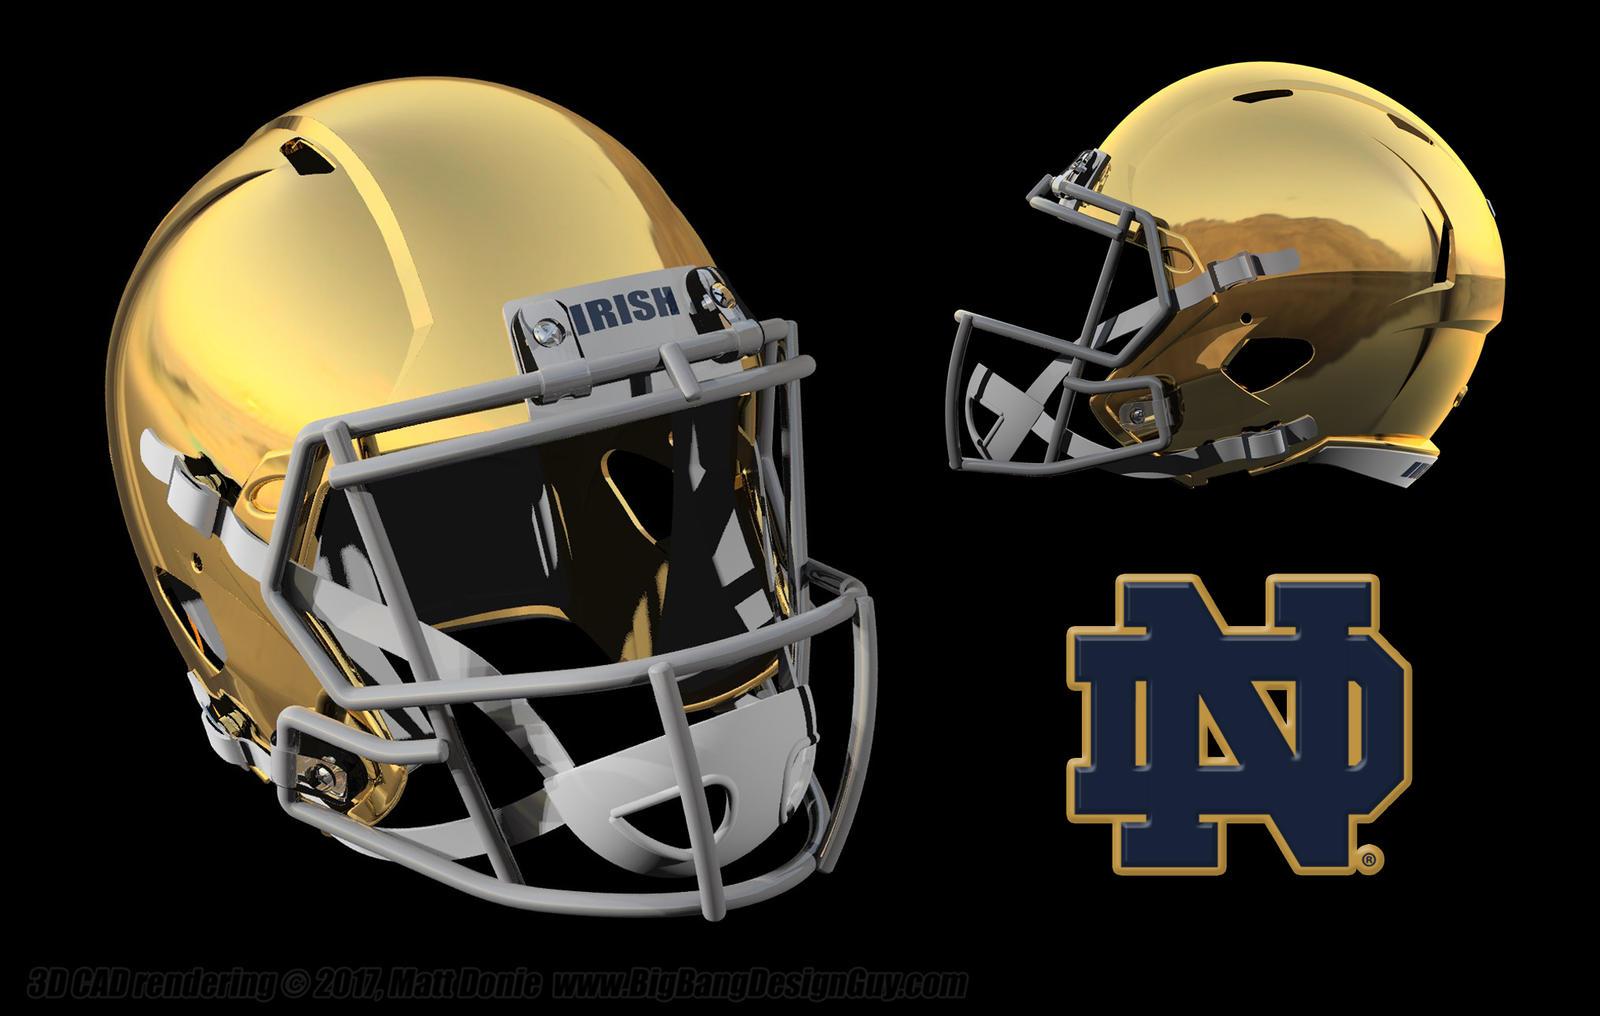 Notre dame football helmet 03 by ravendeviant on deviantart - Notre dame football wallpaper ...